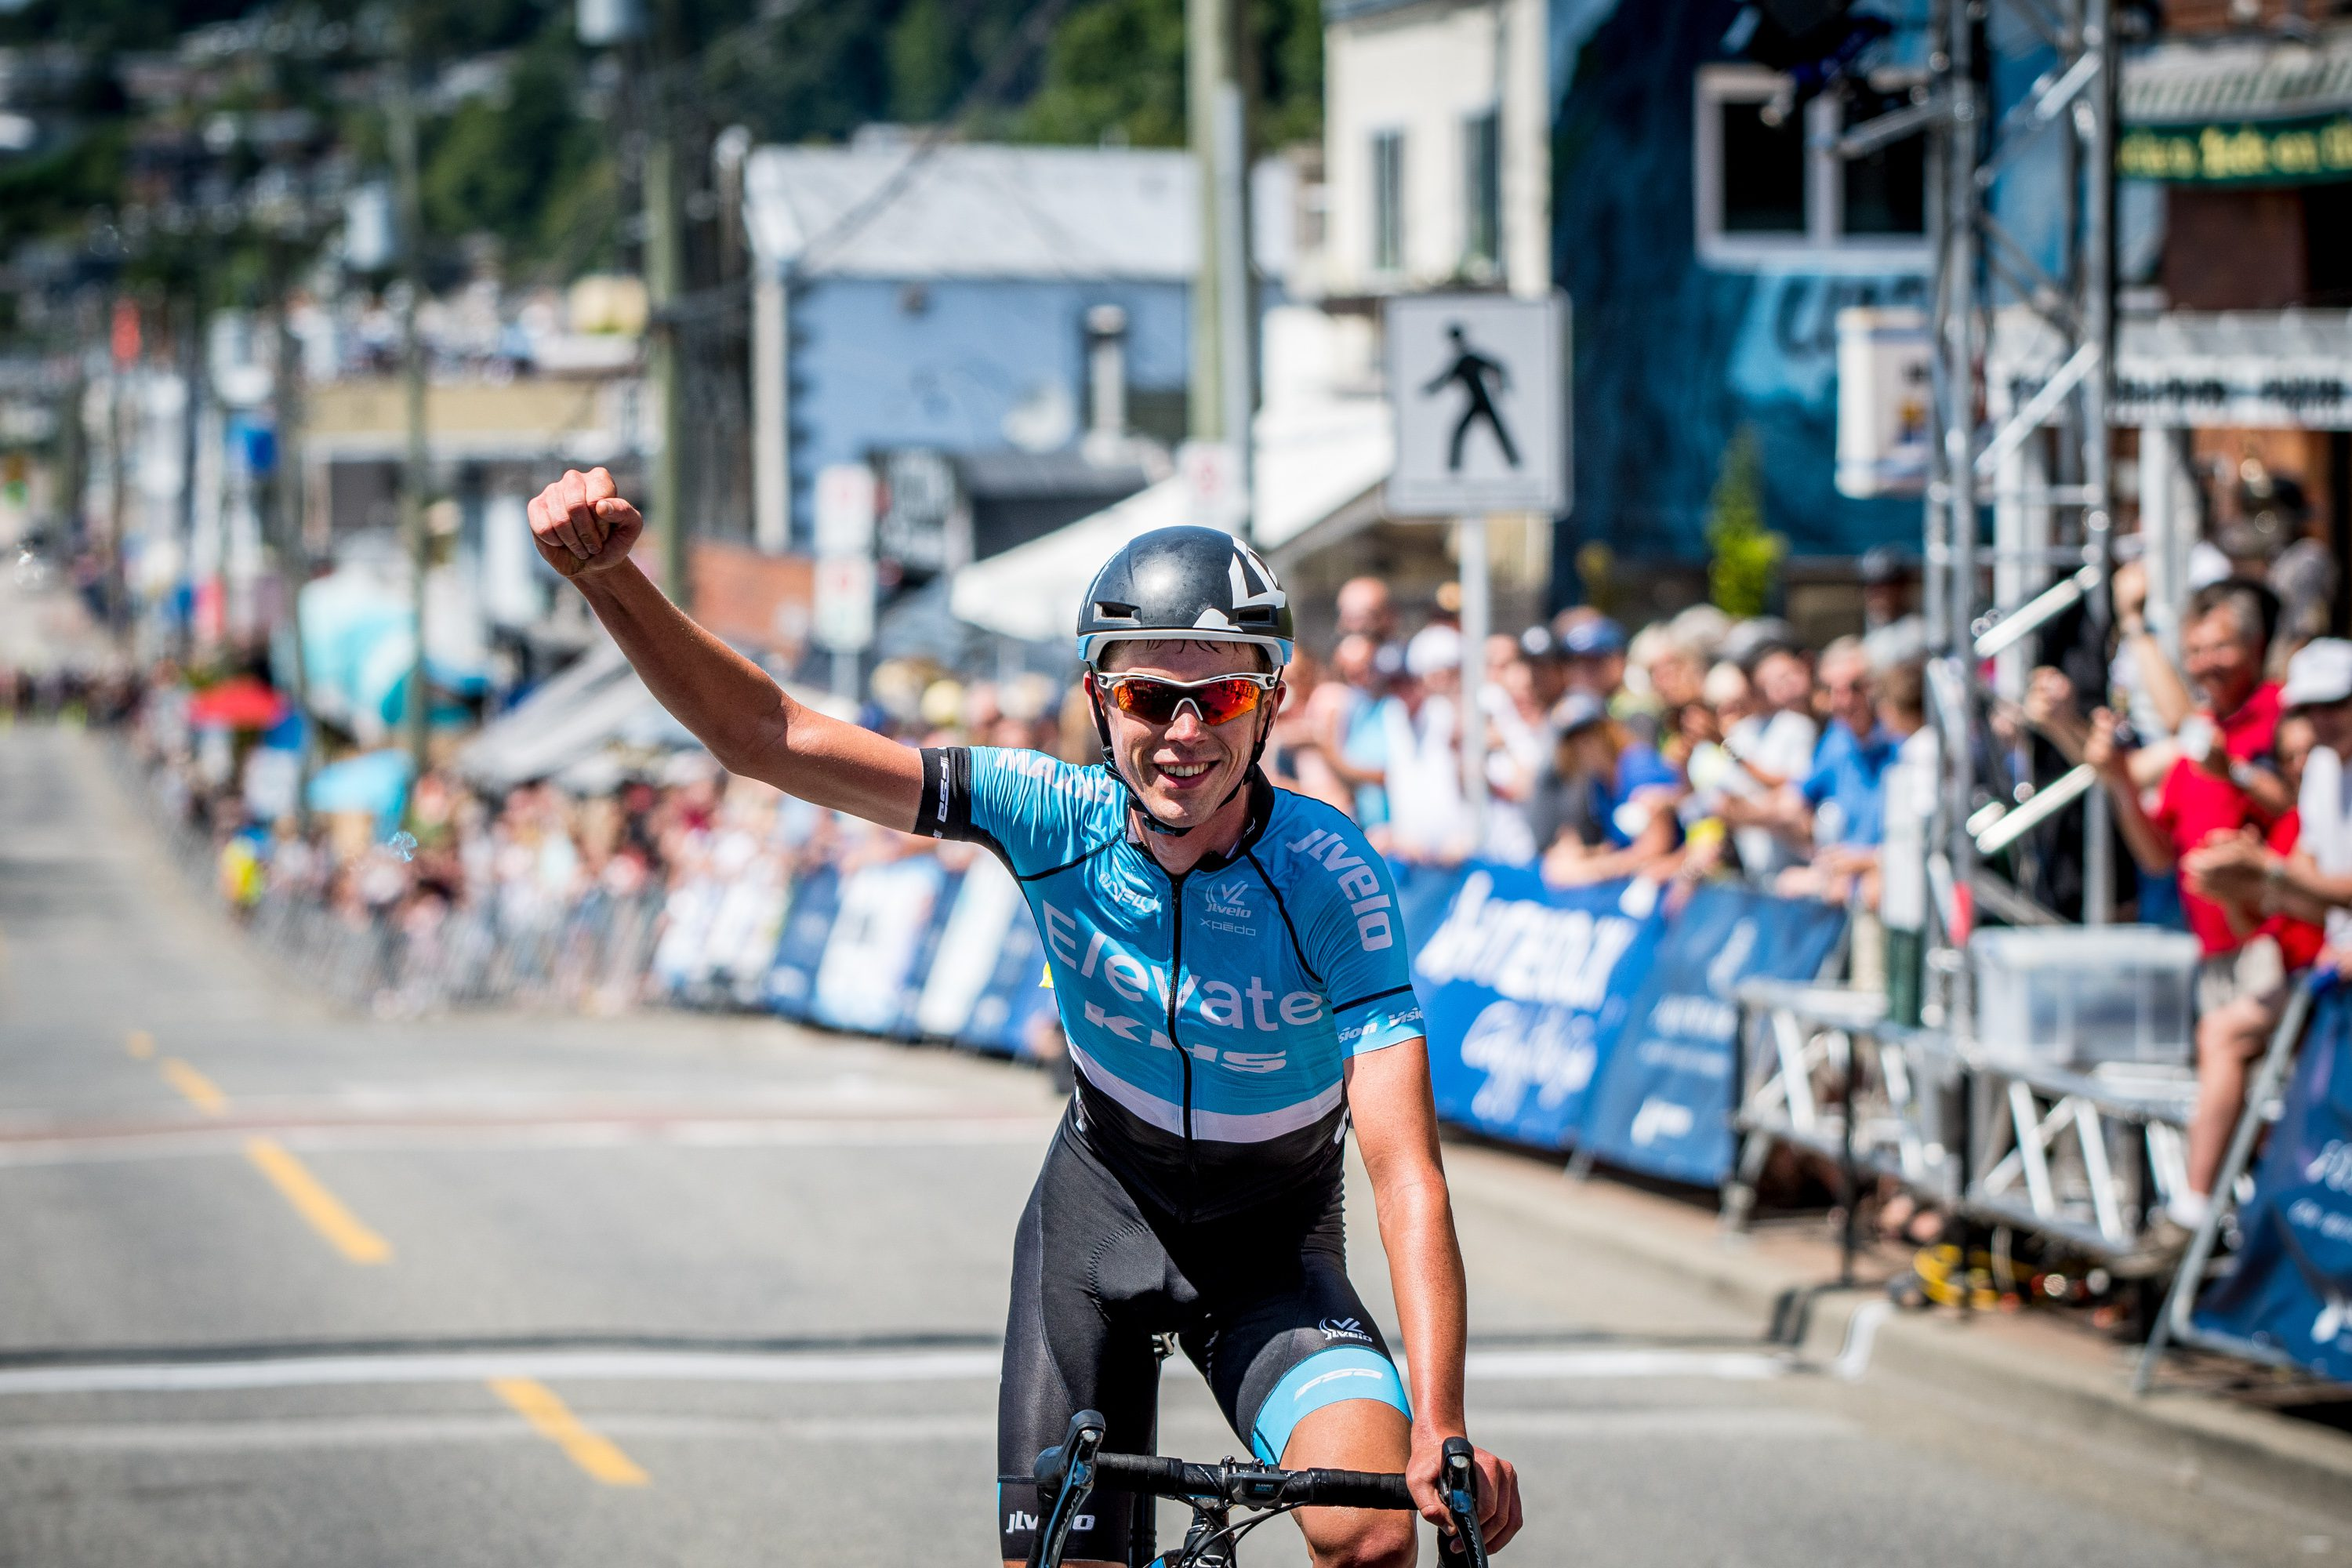 Canadians shine on final weekend of 2019 BC Superweek